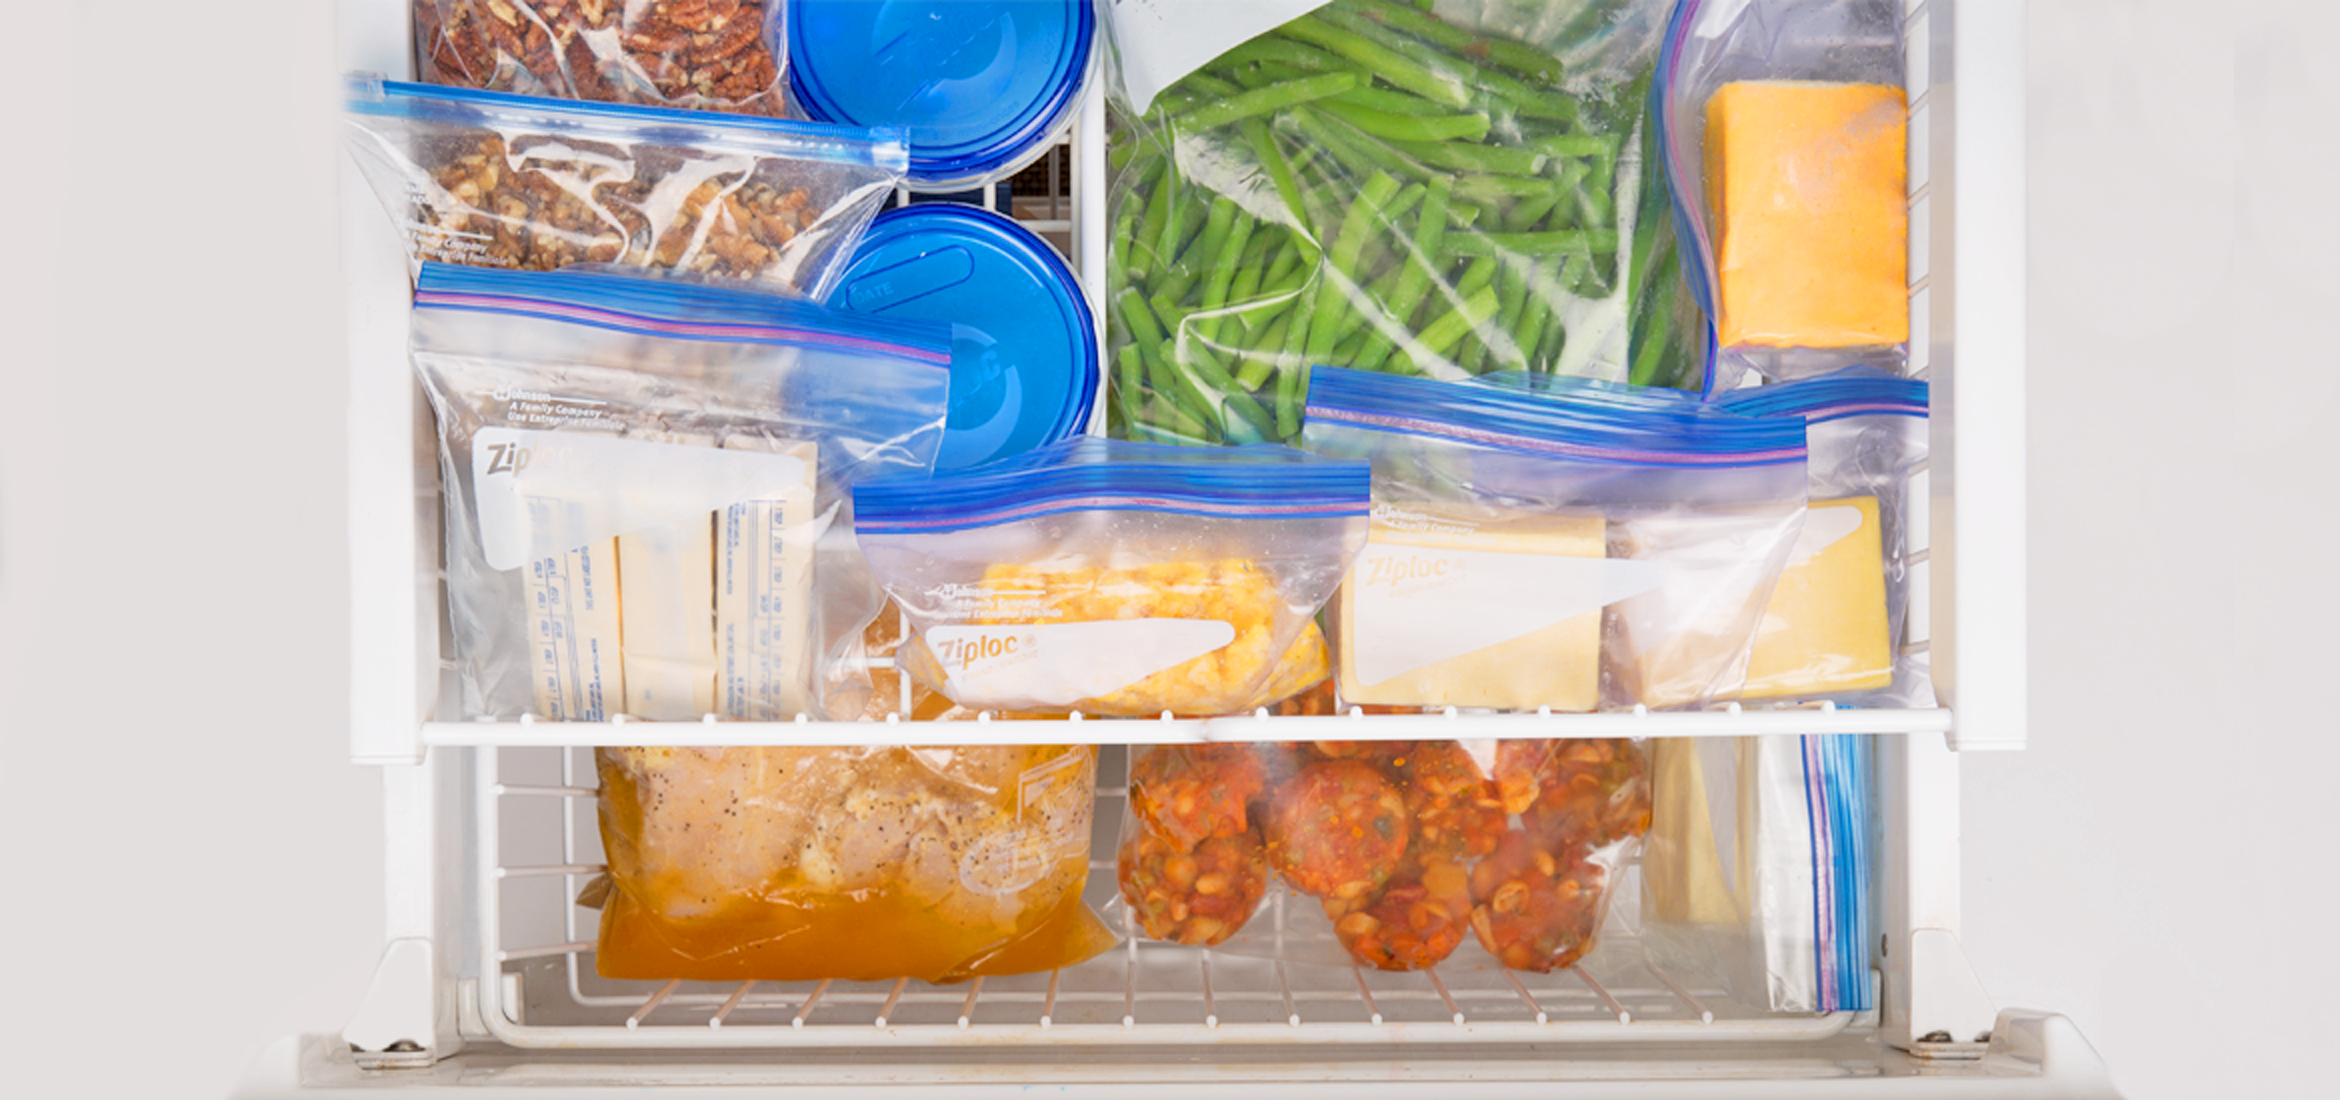 Ziploc Top Tips For Freezing Food Ziploc Brand Sc